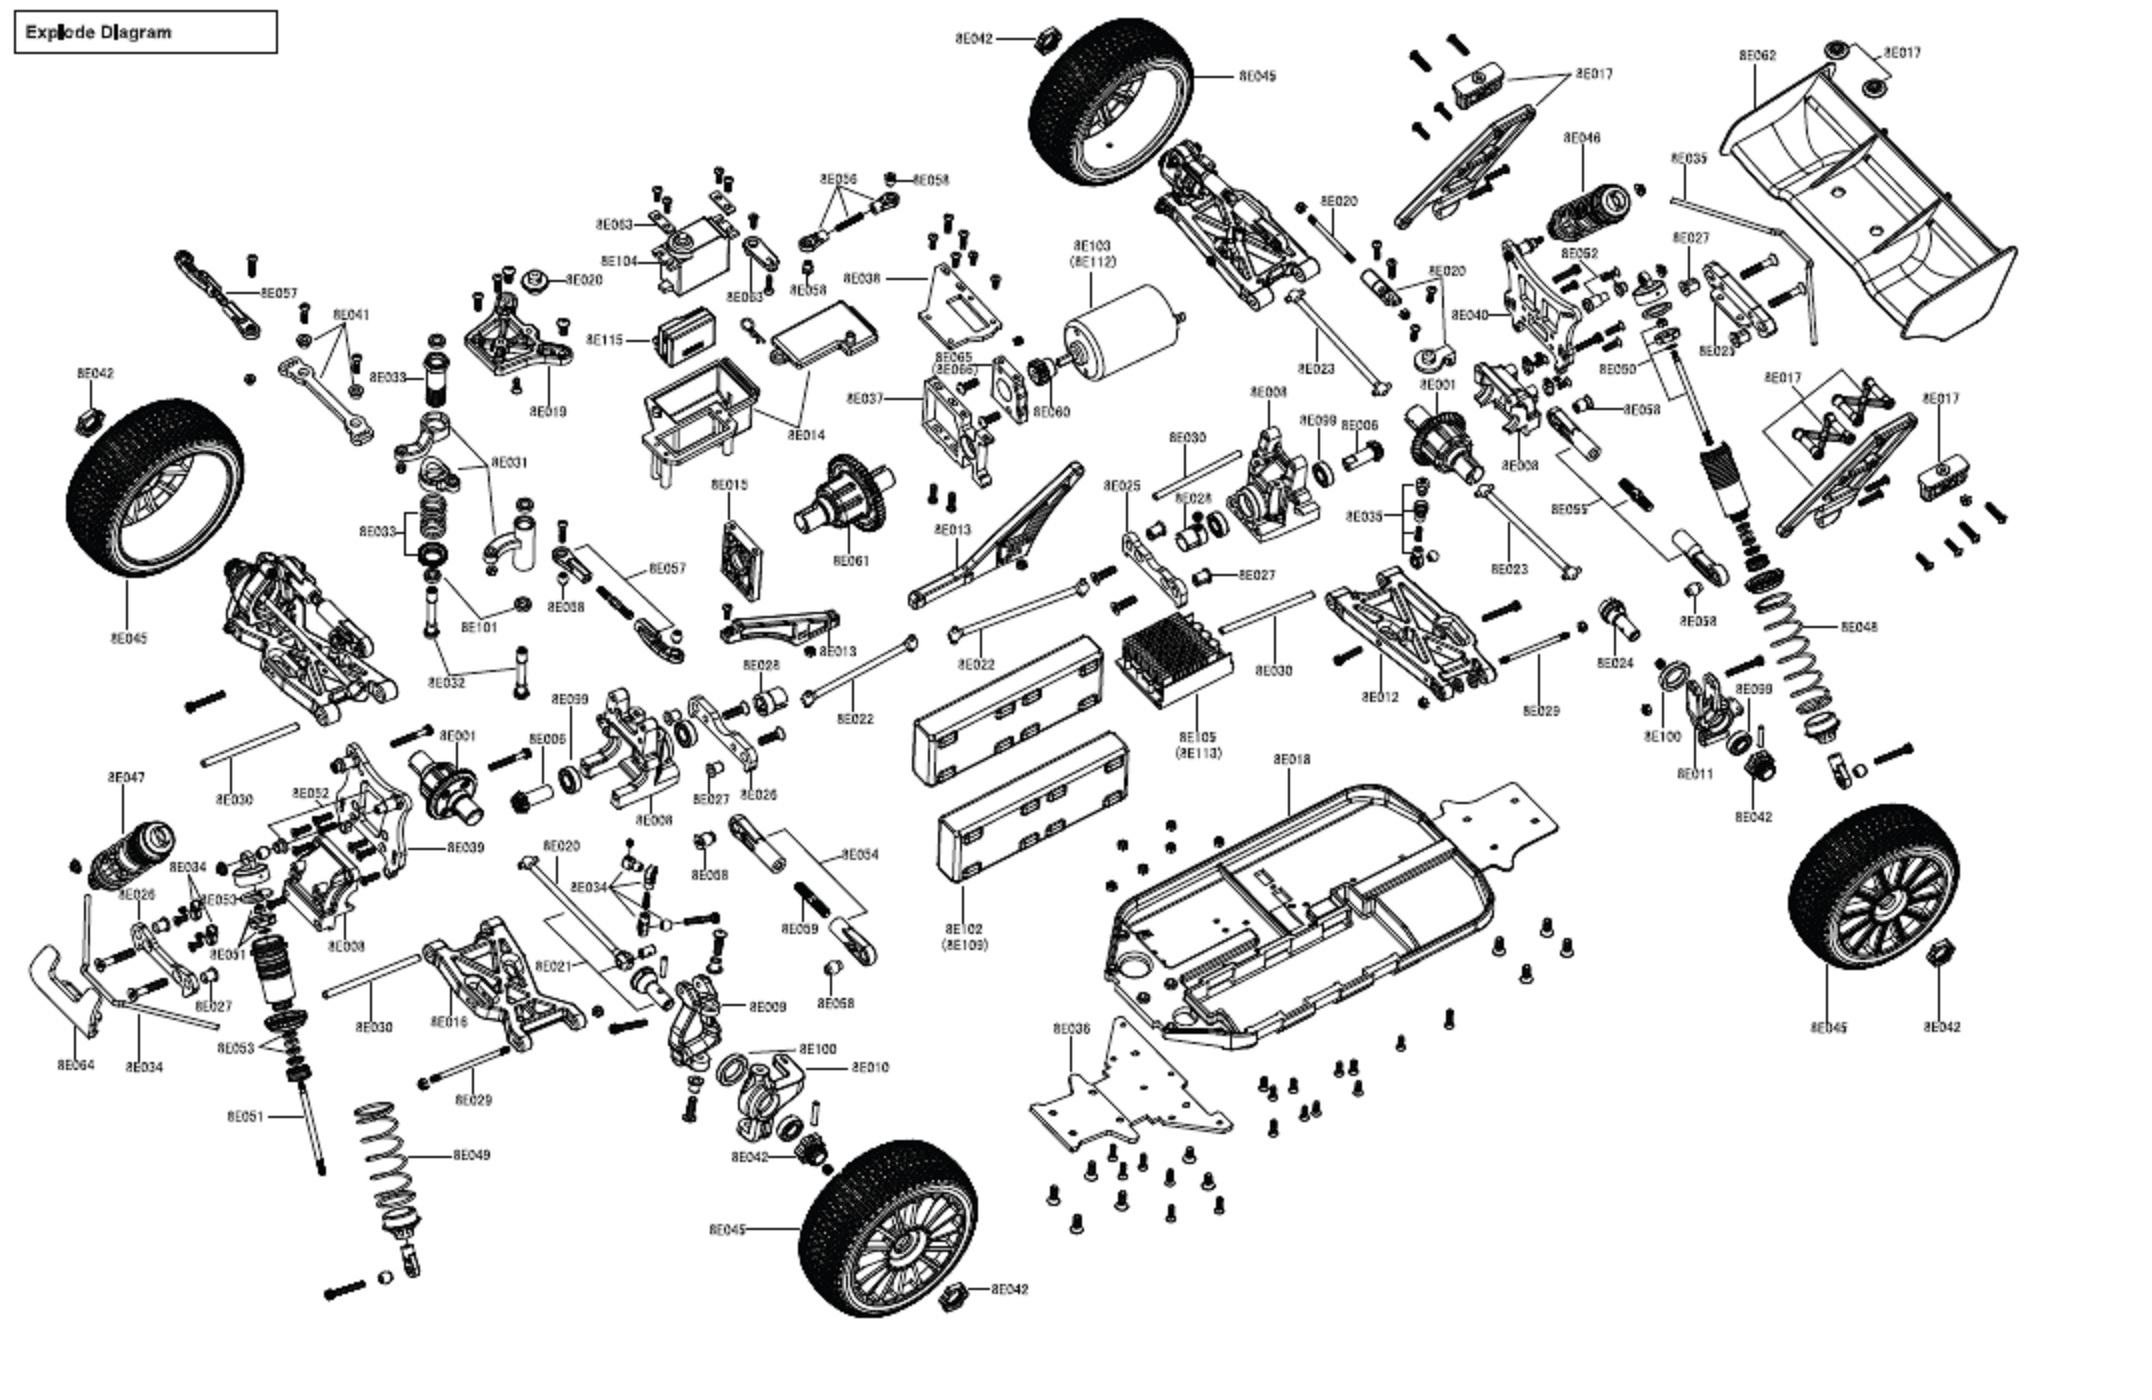 56 ford car wiring diagram